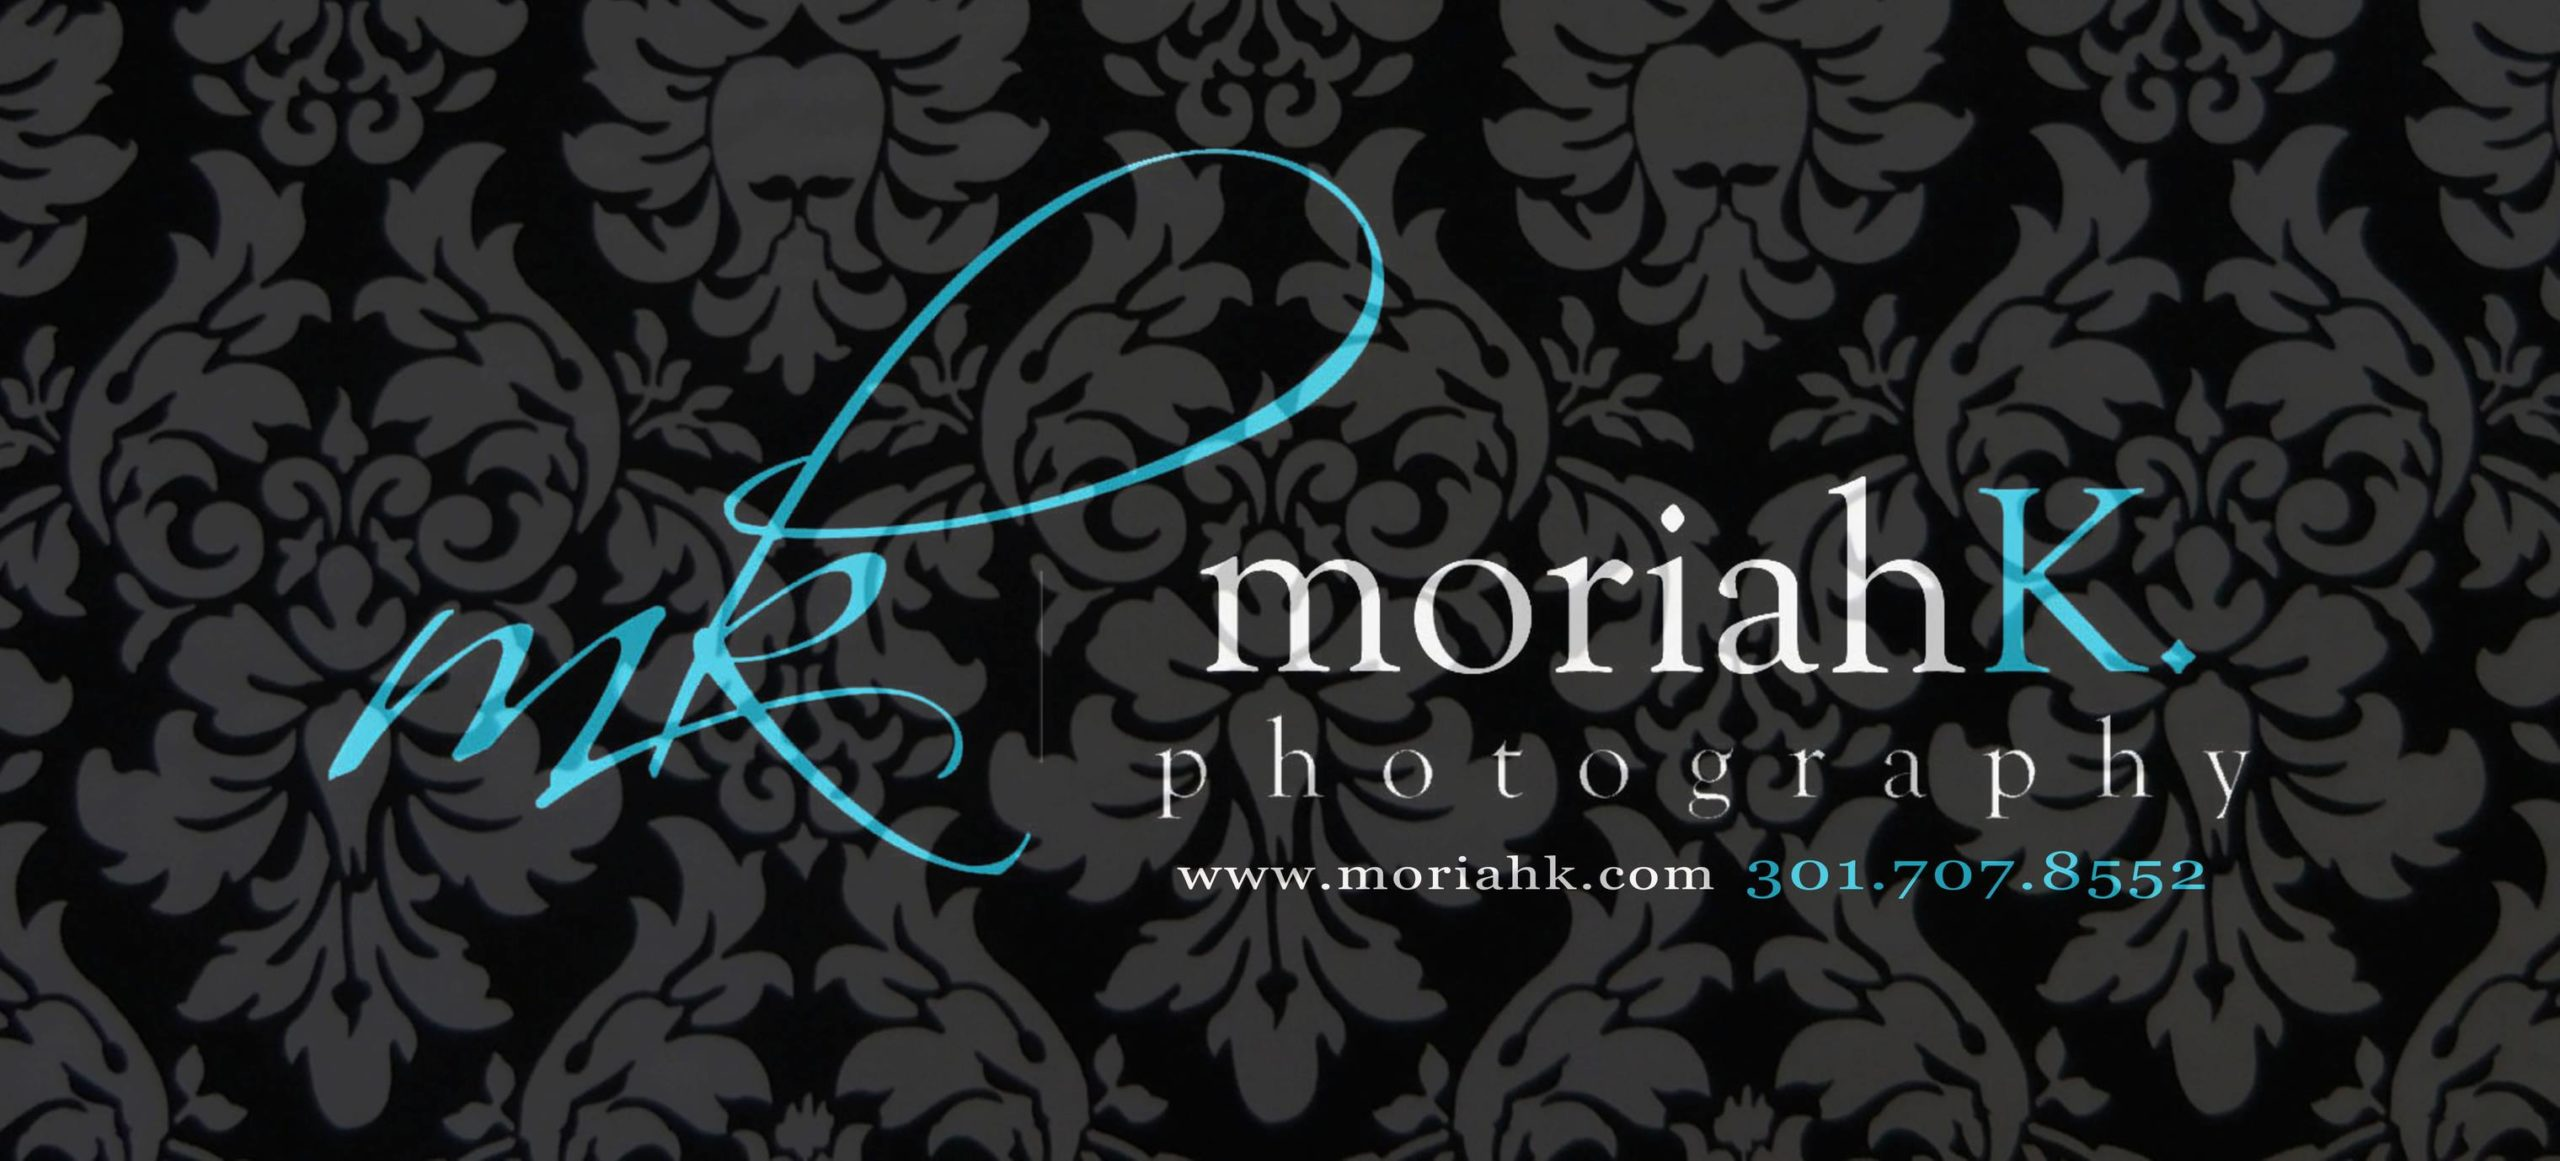 Moriah K Photography